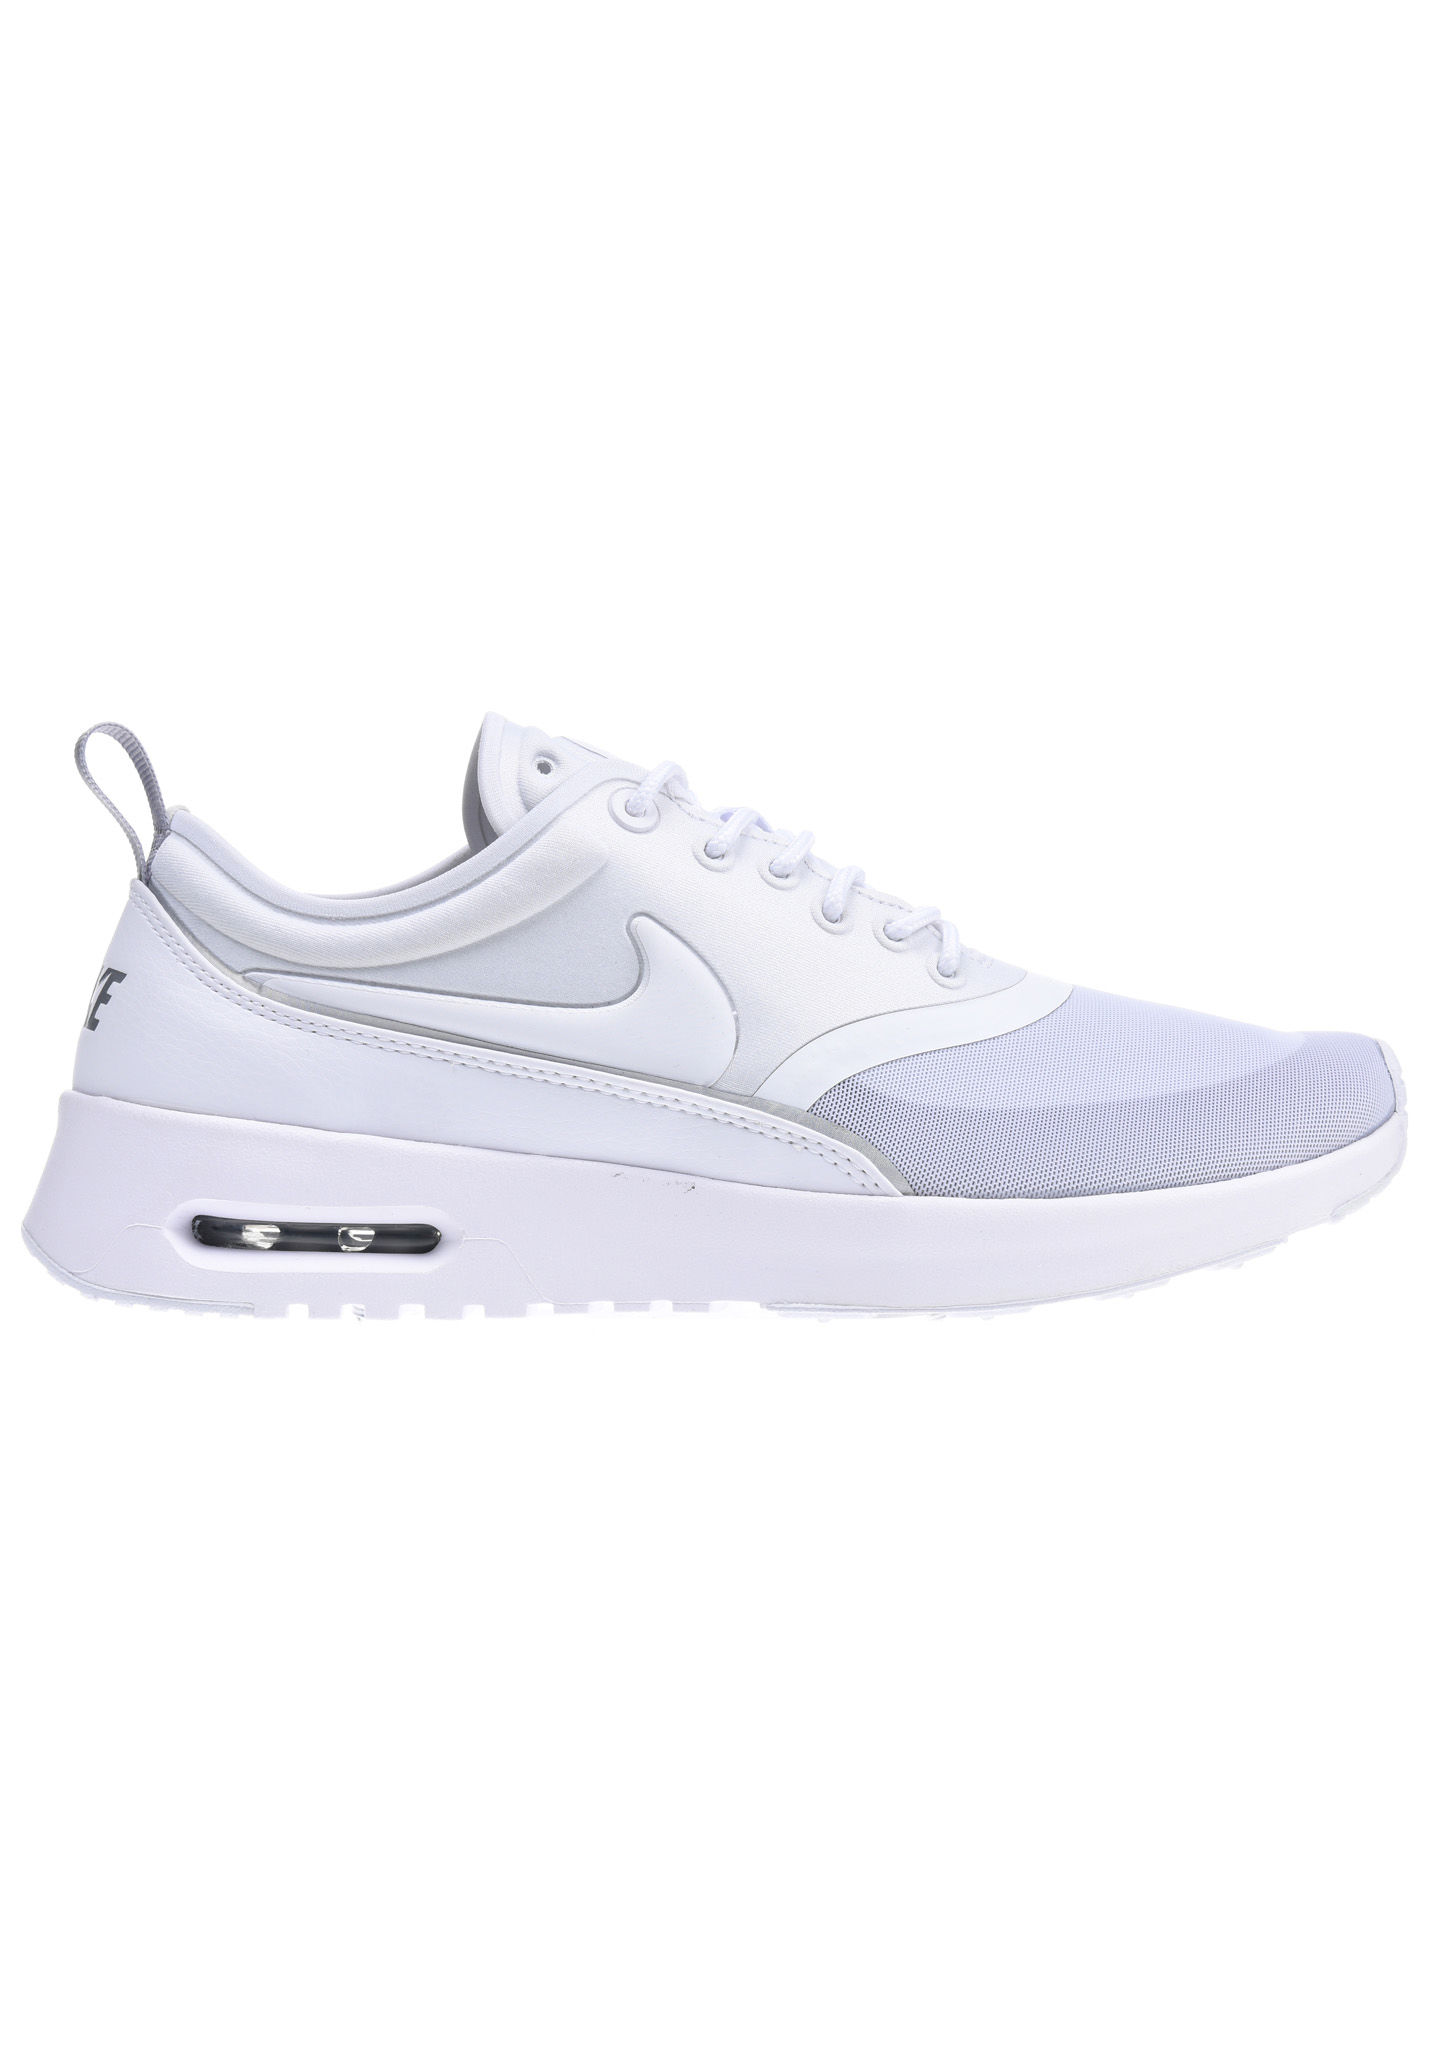 new arrival 0a7c4 9035e NIKE SPORTSWEAR Air Max Thea Ultra - Sneakers for Women - White - Planet  Sports